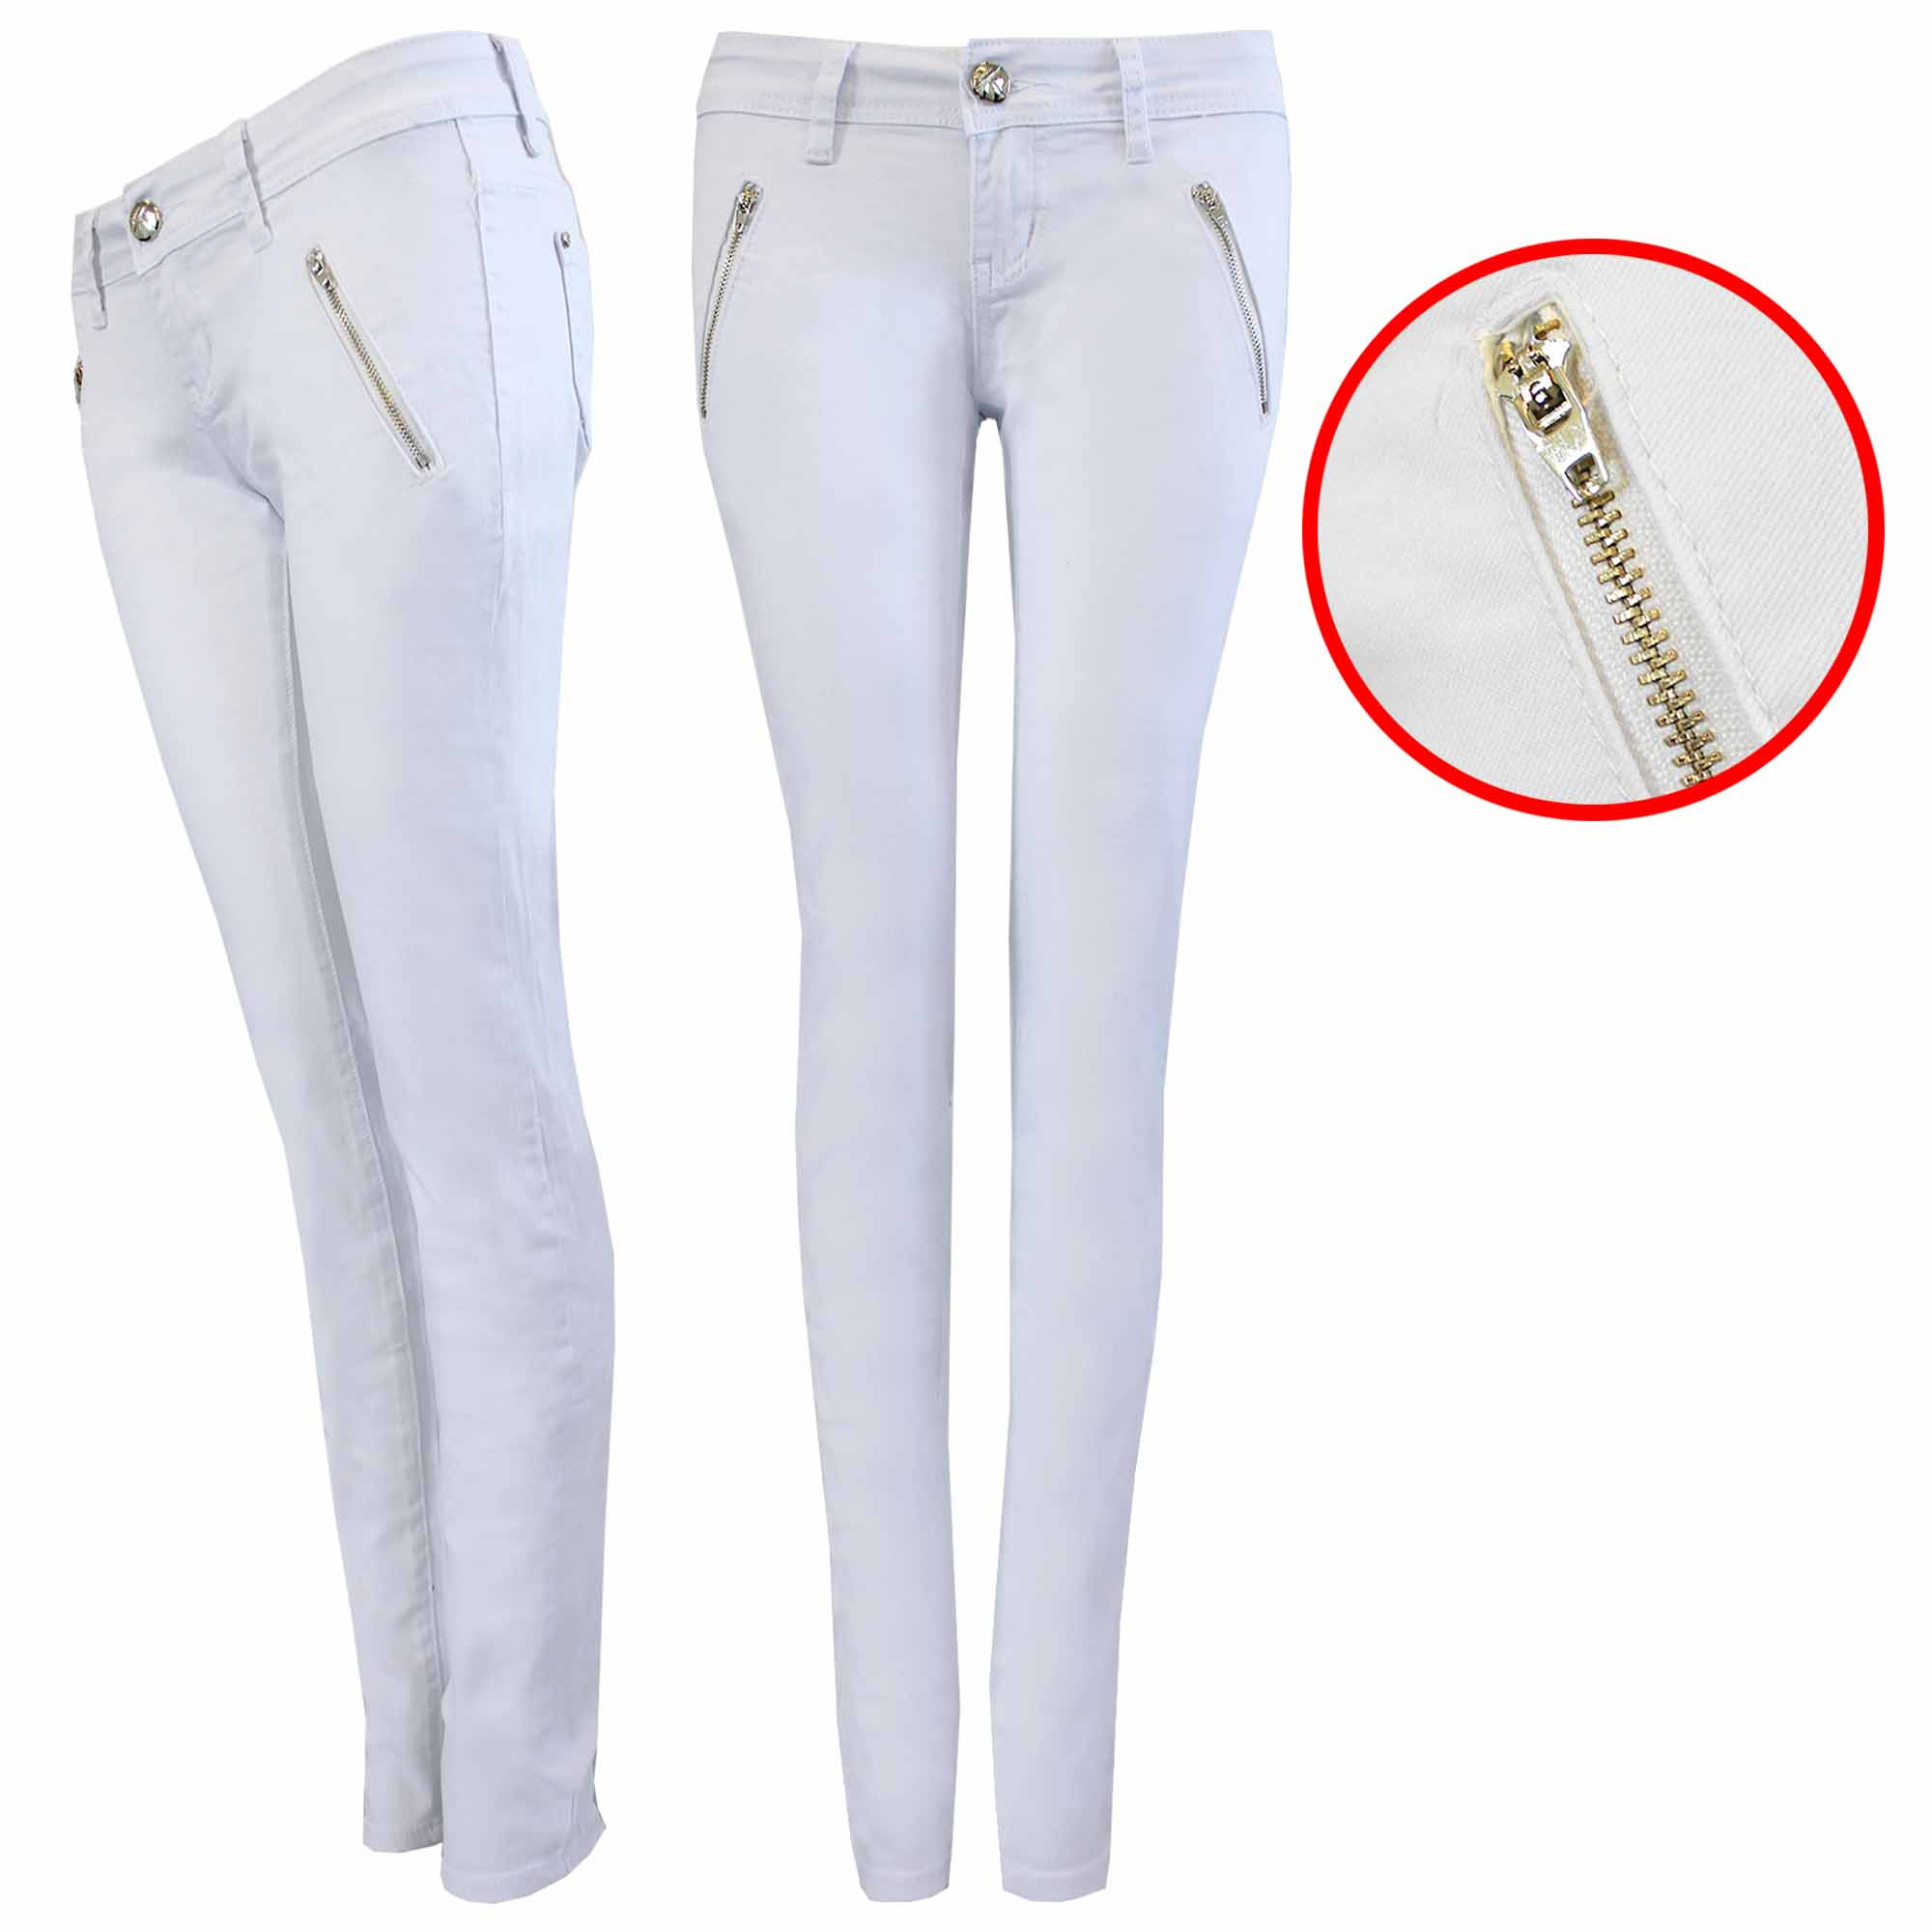 NEW WOMEN LADIES WHITE JEANS ZIP FRONT SKINNY LEG STRETCH DENIM ...